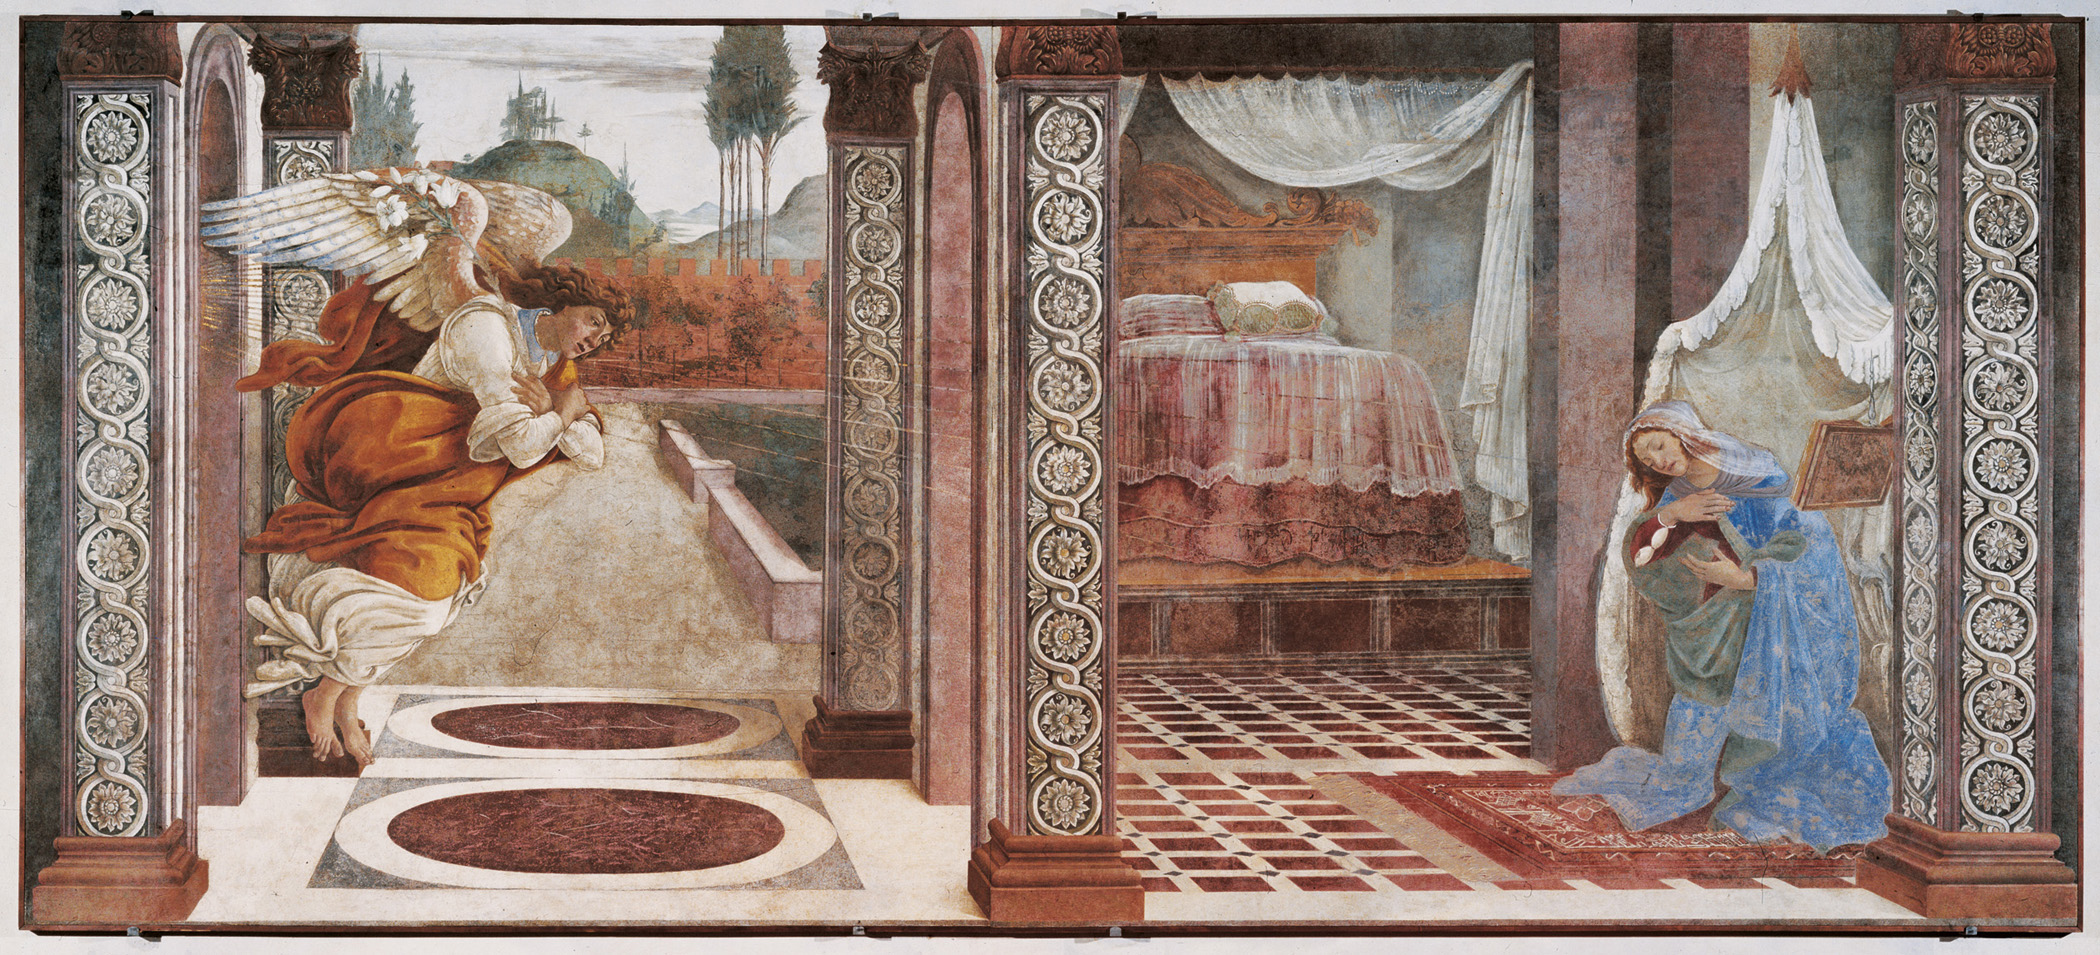 File:Botticelli - Annunciation, 1481 (Uffizi).jpg